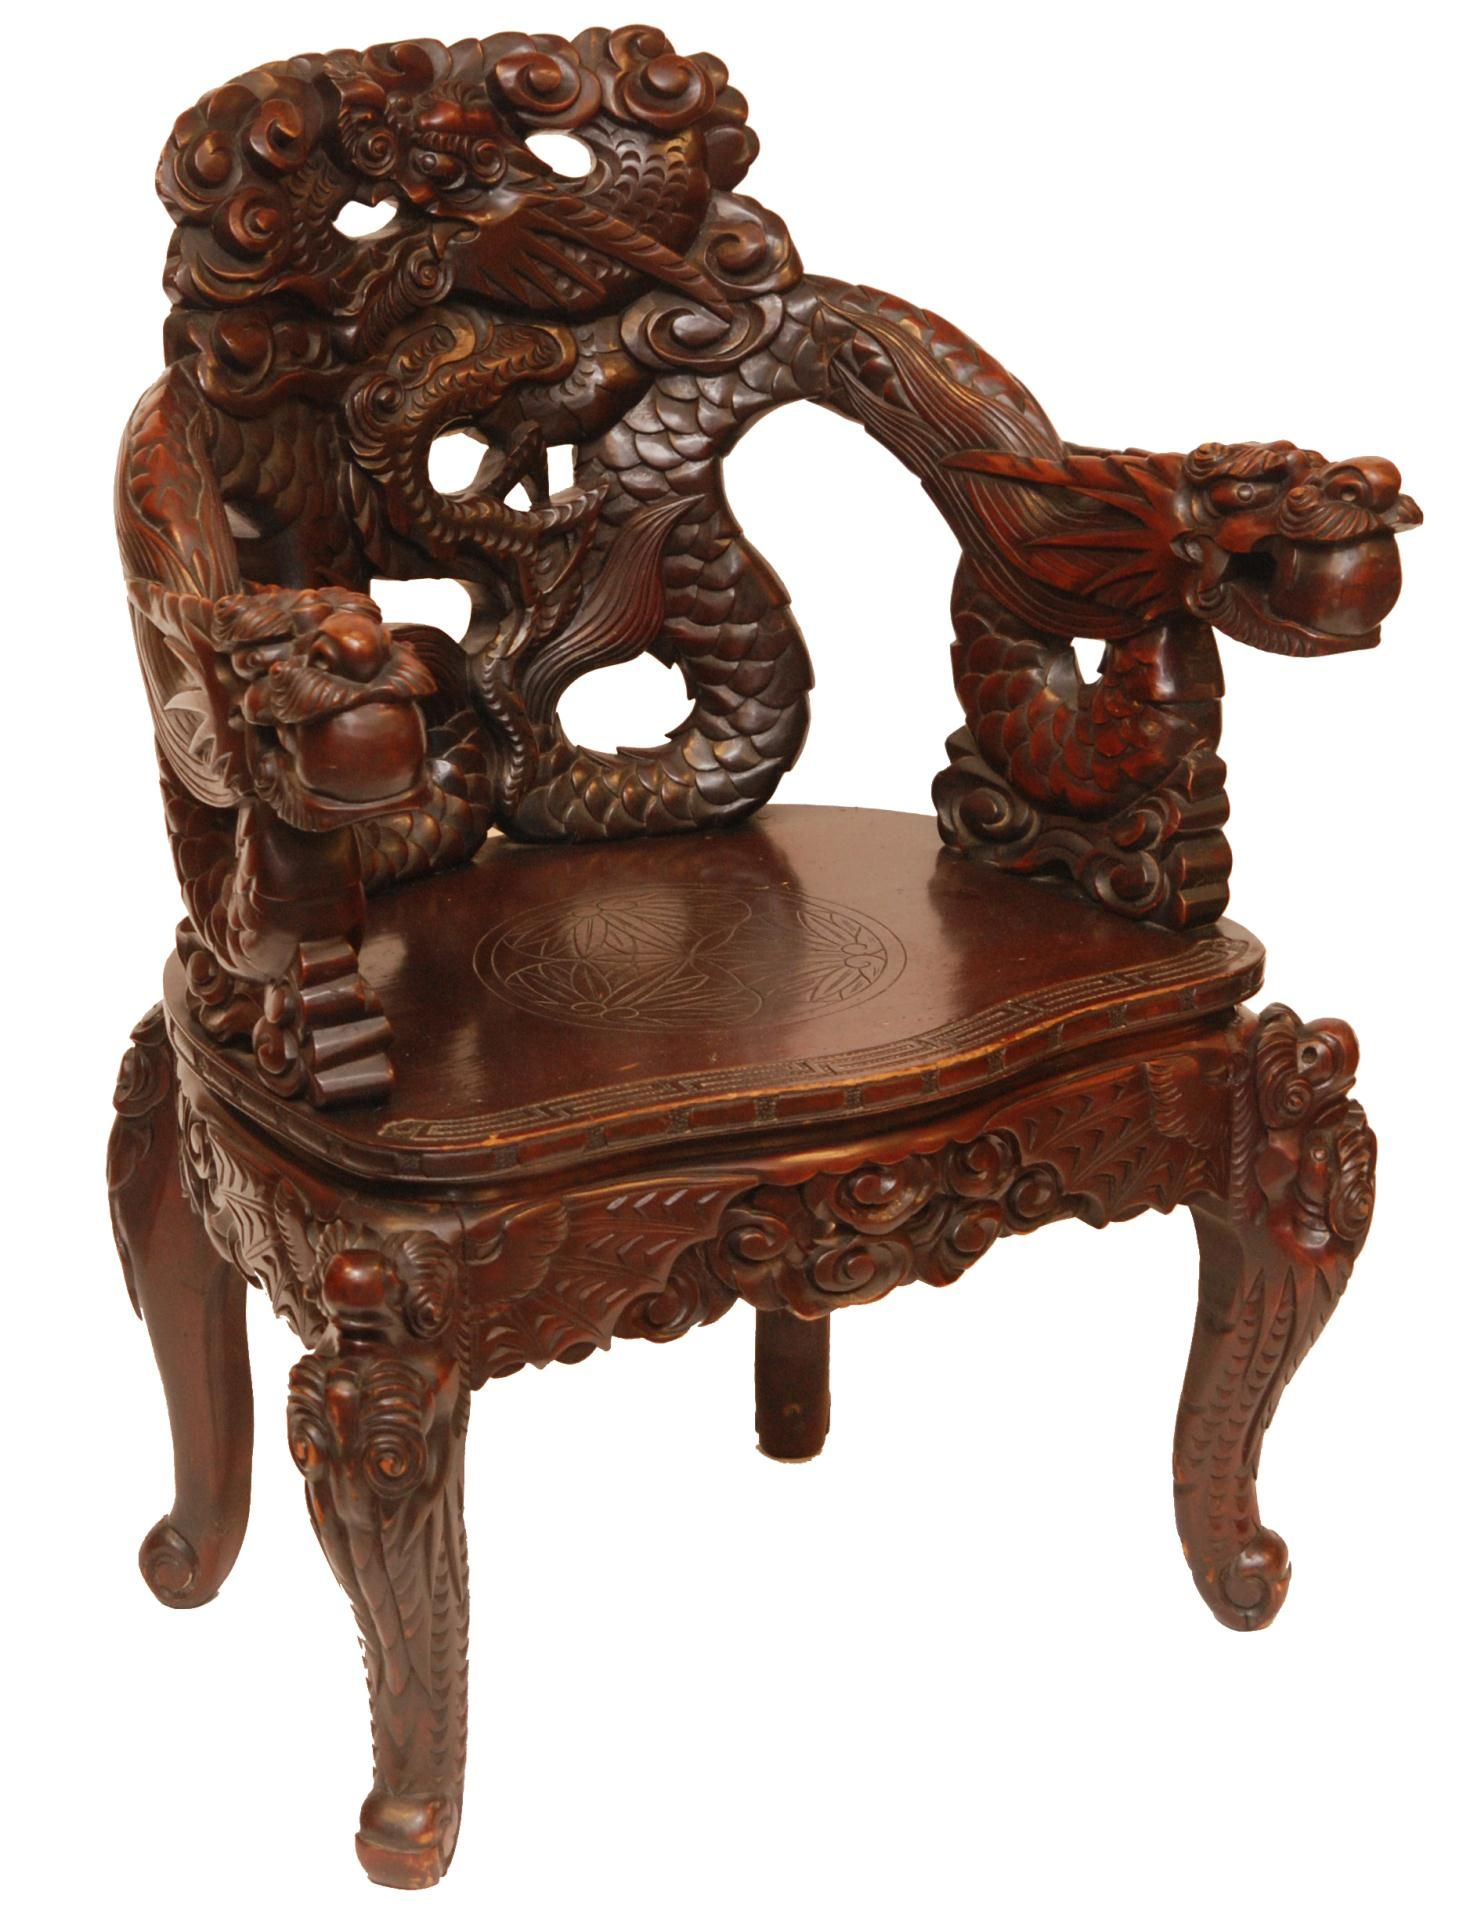 Ordinaire Chinese Wood Carvings | 557 Chinese Carved Wooden Dragons Chair Chinese  Hand Carved And Fully .